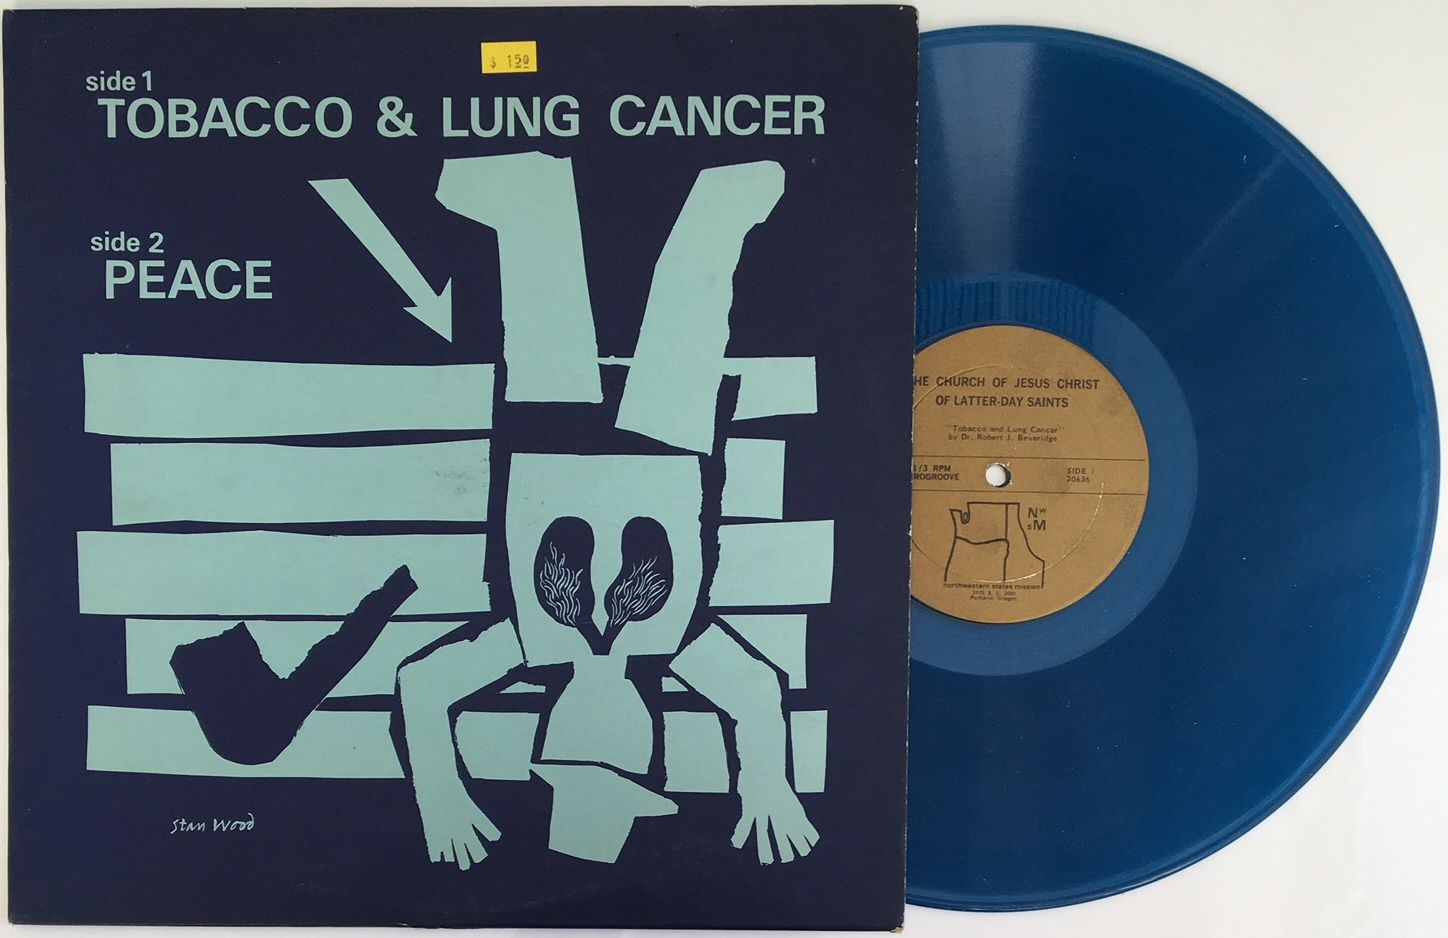 Tobacco & Lung Cancer